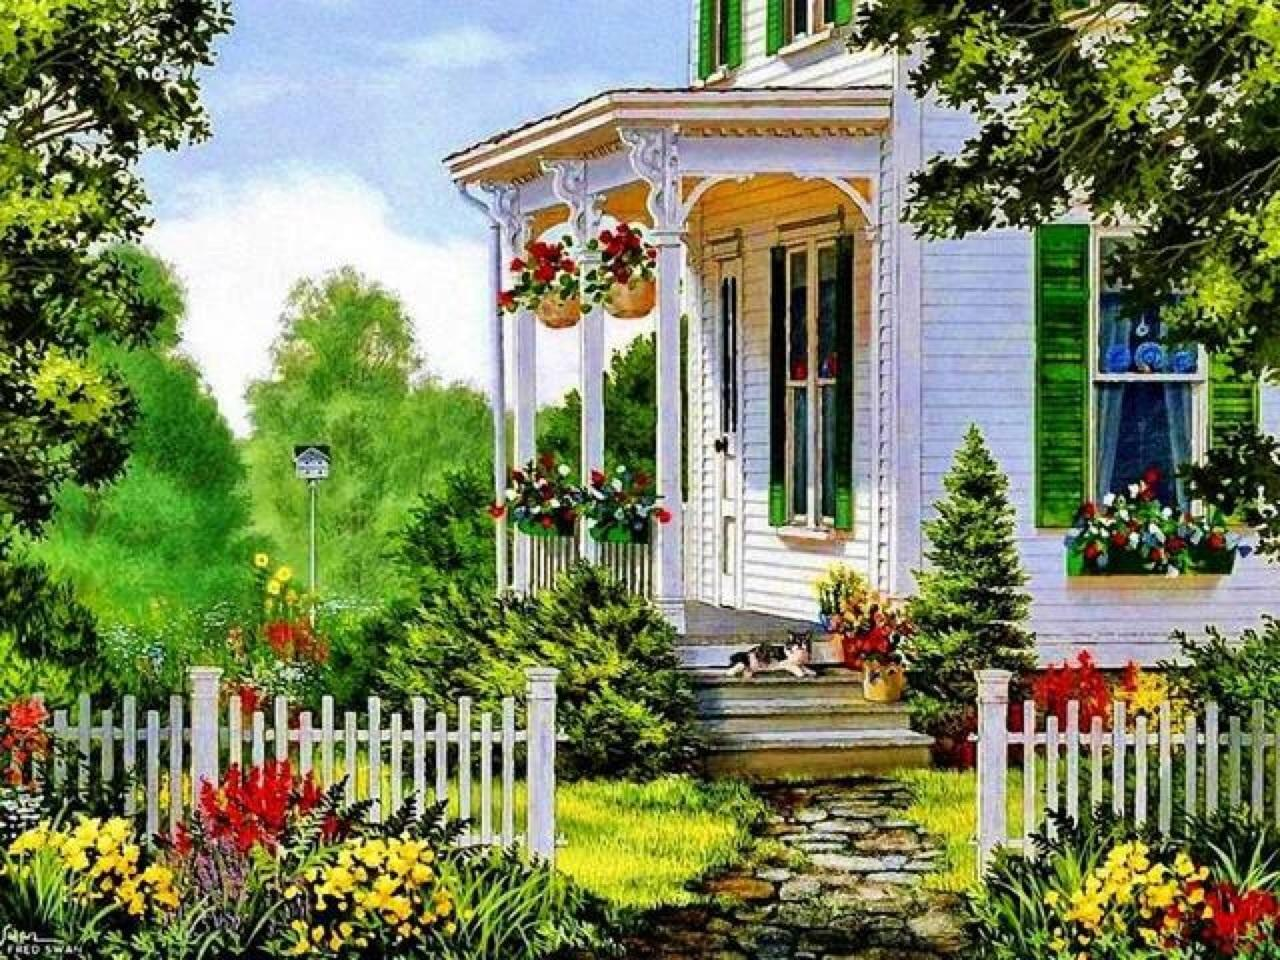 home sweet home   150992   High Quality and Resolution Wallpapers 1280x960